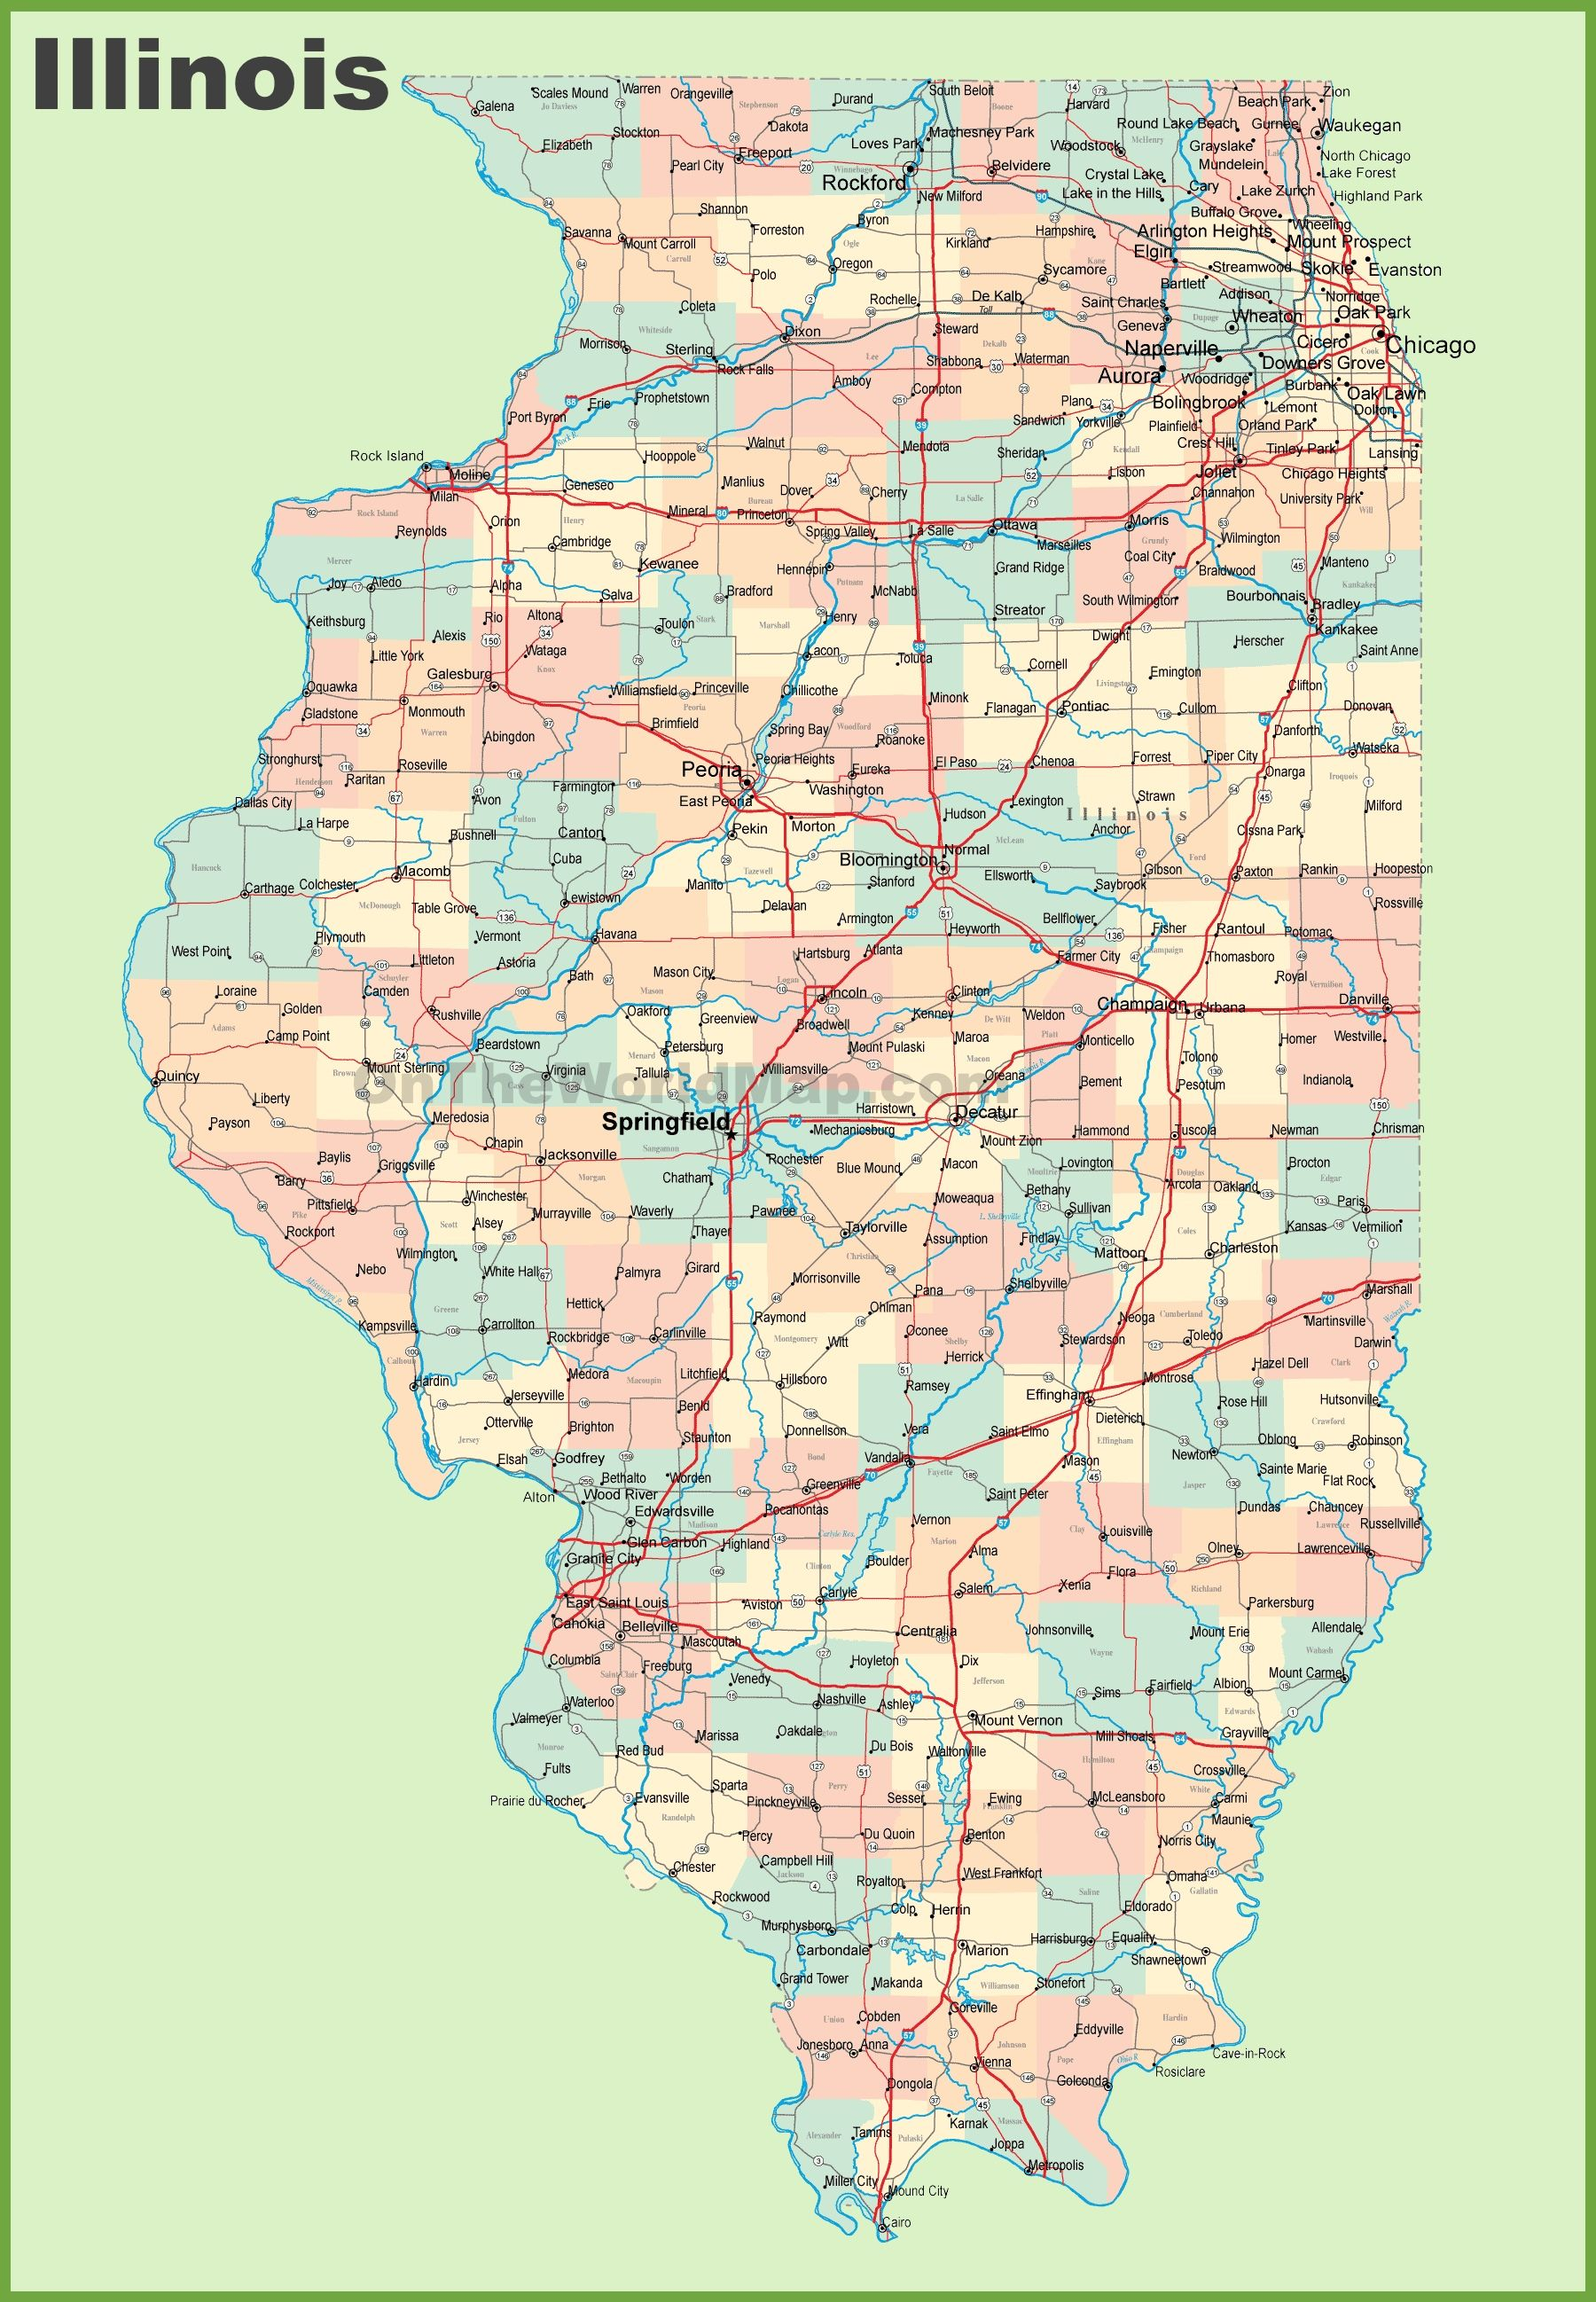 Map of Illinois with cities and towns | State Maps | Highway map, Us Illinois Highway Map on illinois state map, illinois india map, illinois expressway map, interstate 57 illinois map, illinois state highways, illinois county map printable, illinois street map, illinois route map, illinois roadway map, i-88 illinois map, illinois train station map, illinois indiana map, illinois river map, il map, illinois counties map, southern illinois map, illinois water well map, illinois abandoned coal mines, illinois tollway map, illinois major highways,